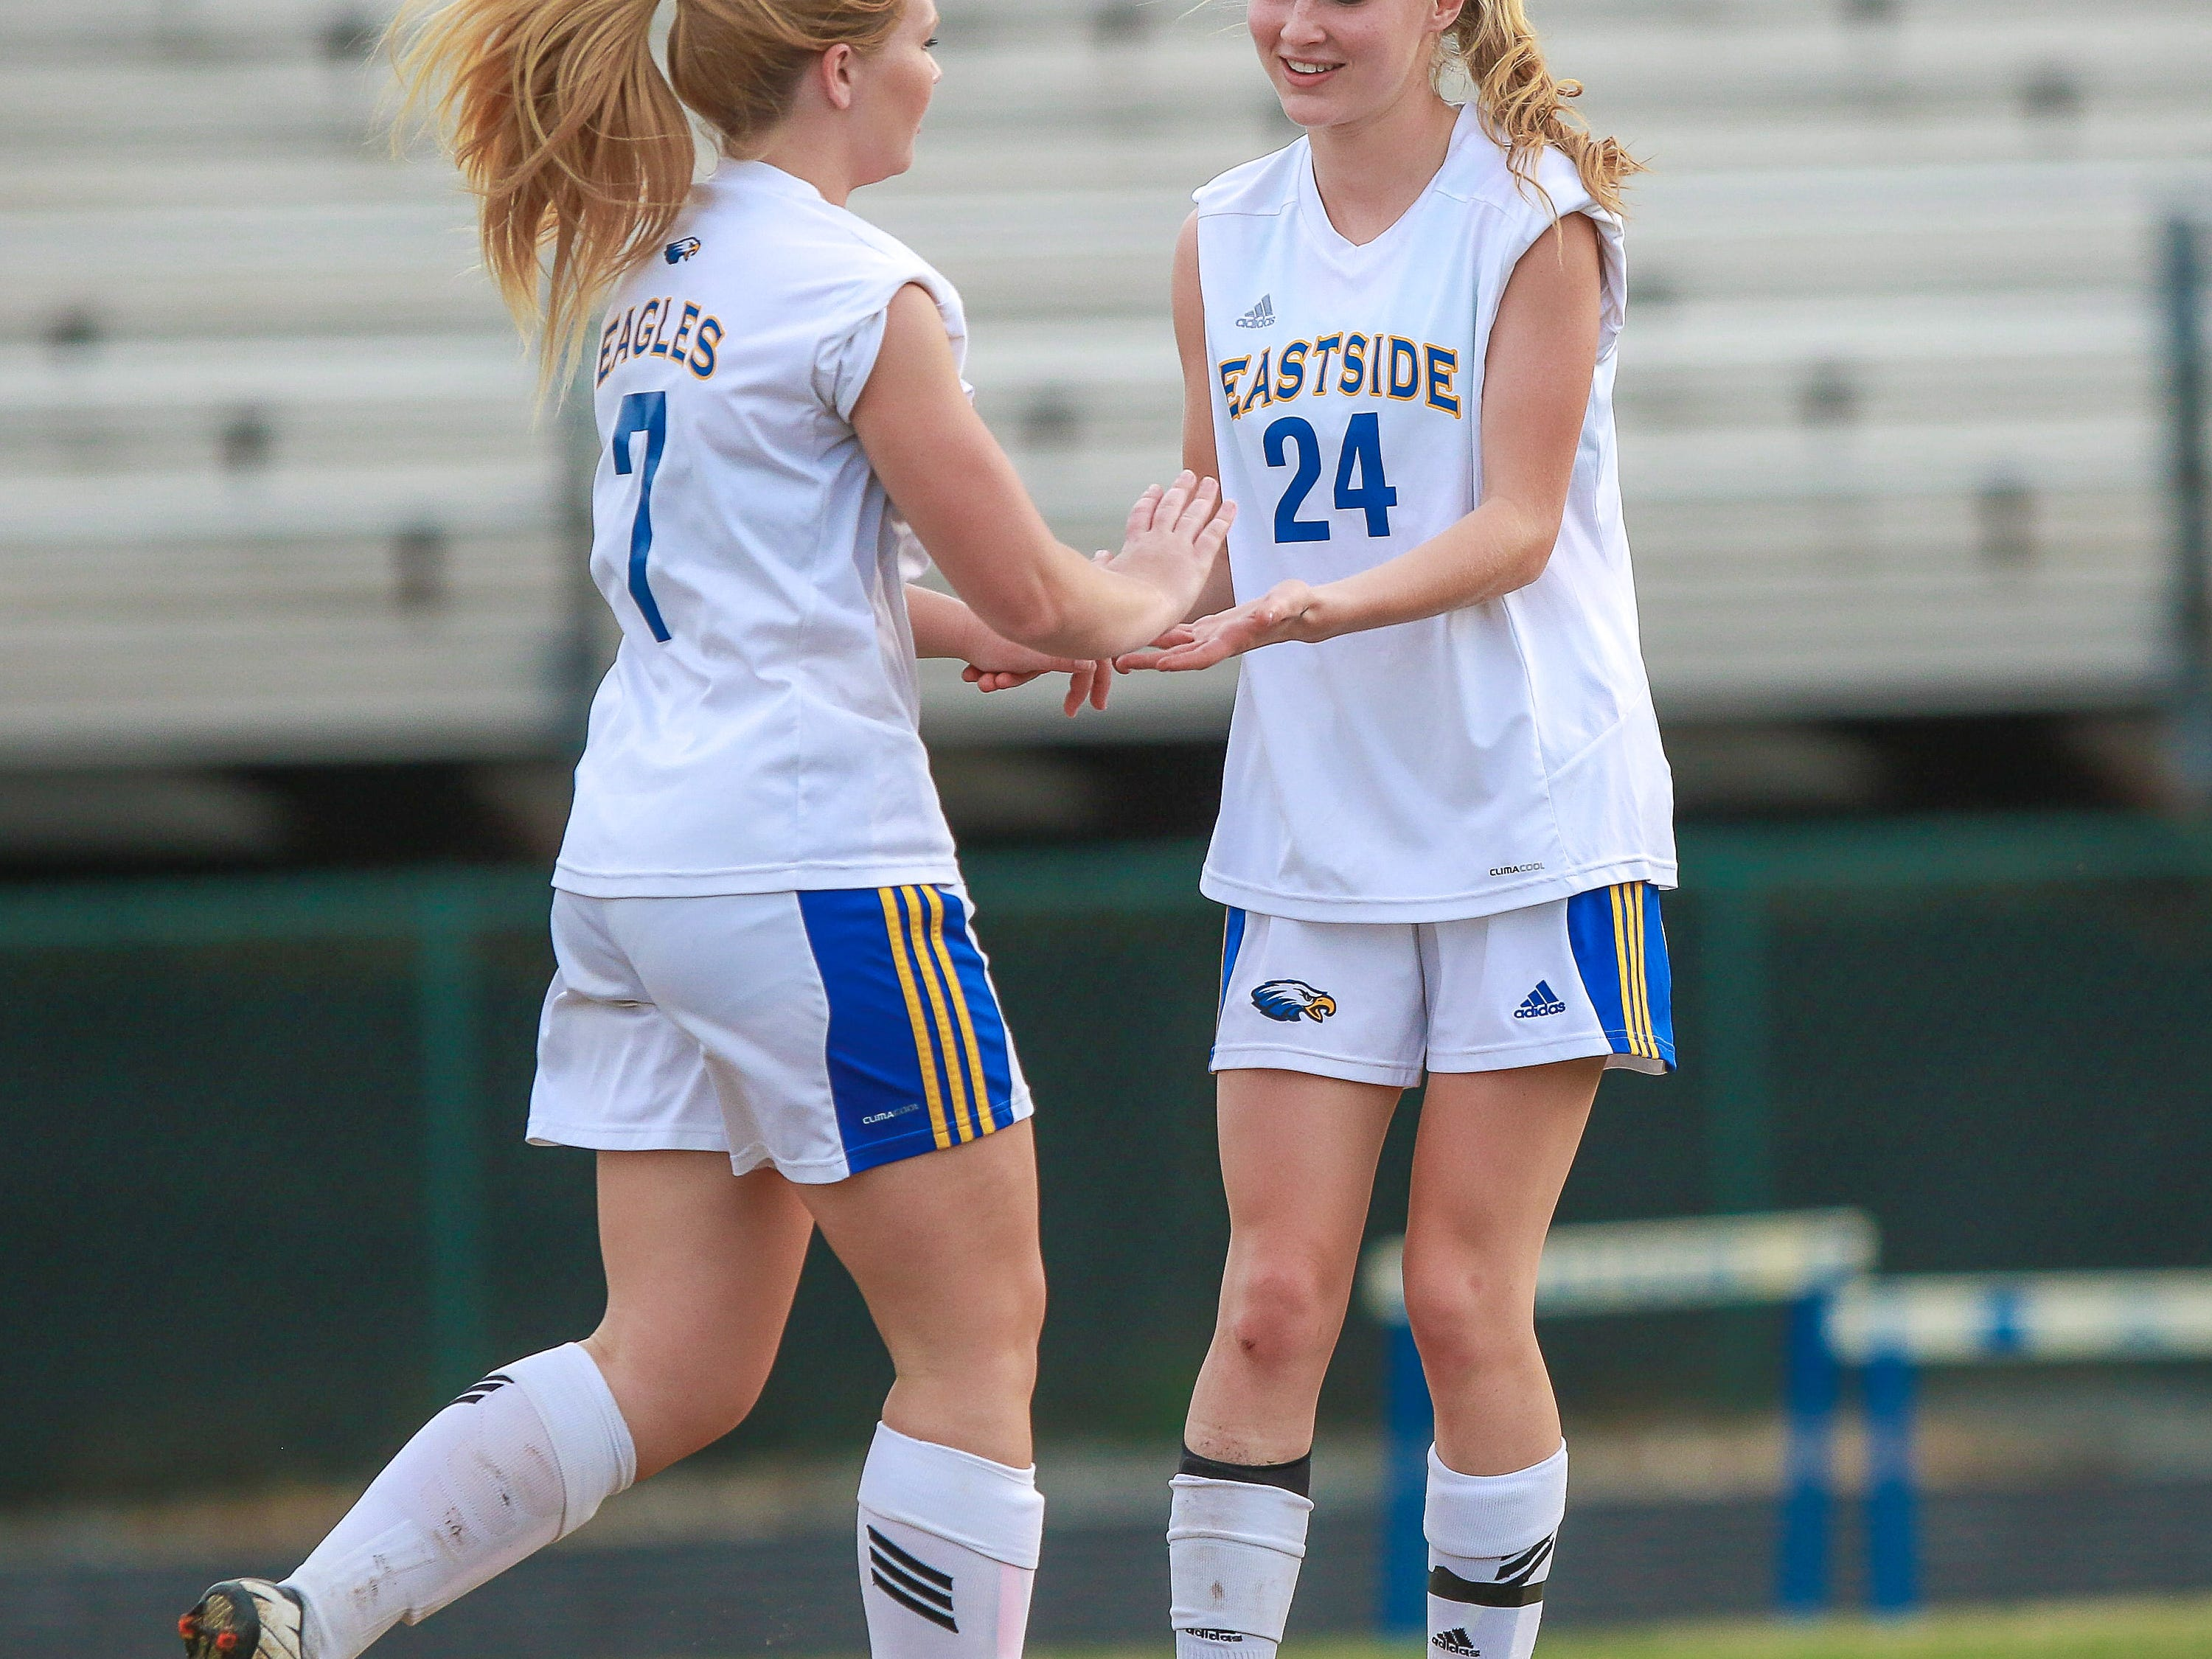 Asheton Robinson (7), left, celebrates with teammate Natalie Royaards (24) after scoring one of her three goals against Greer in the Eagles' 9-0 win Thursday night at John Carlisle Stadium.